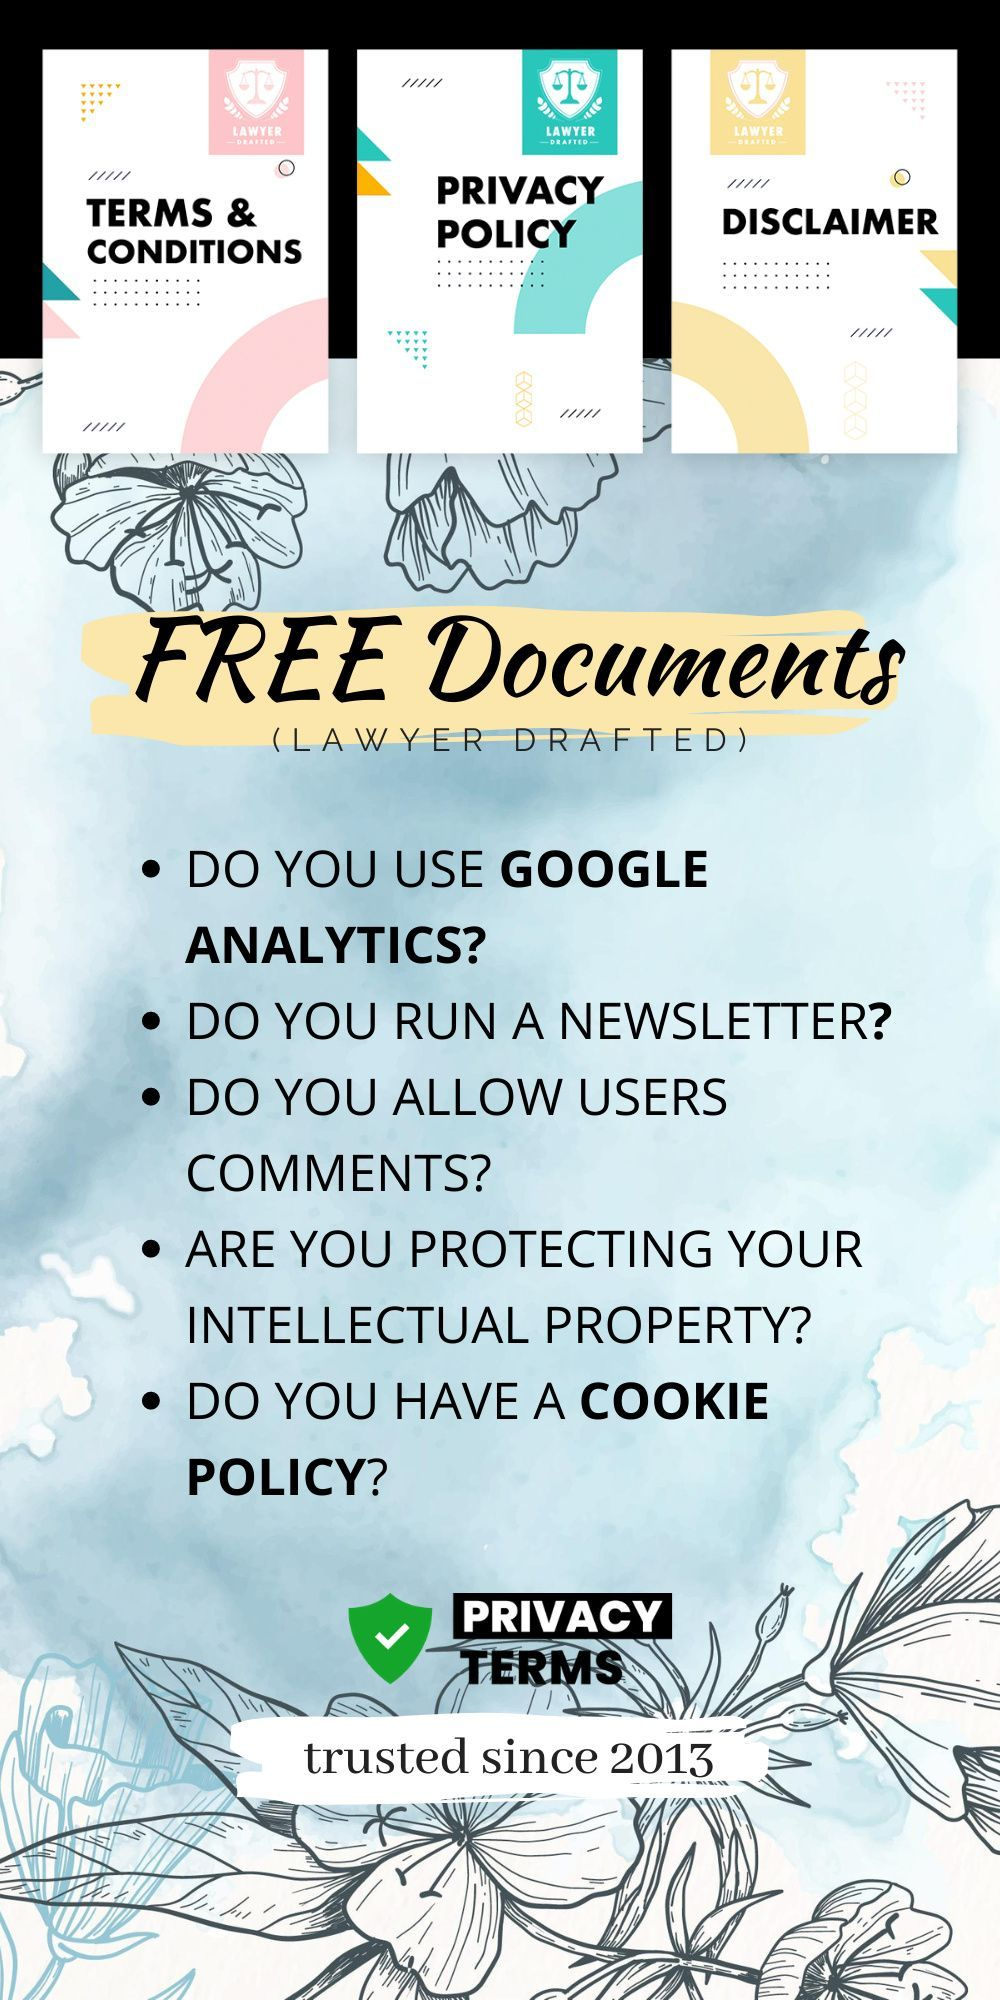 Privacy Policy Generator Comply With Data Protection Laws Blogging Essentials Offer And Acceptance Legal Contracts